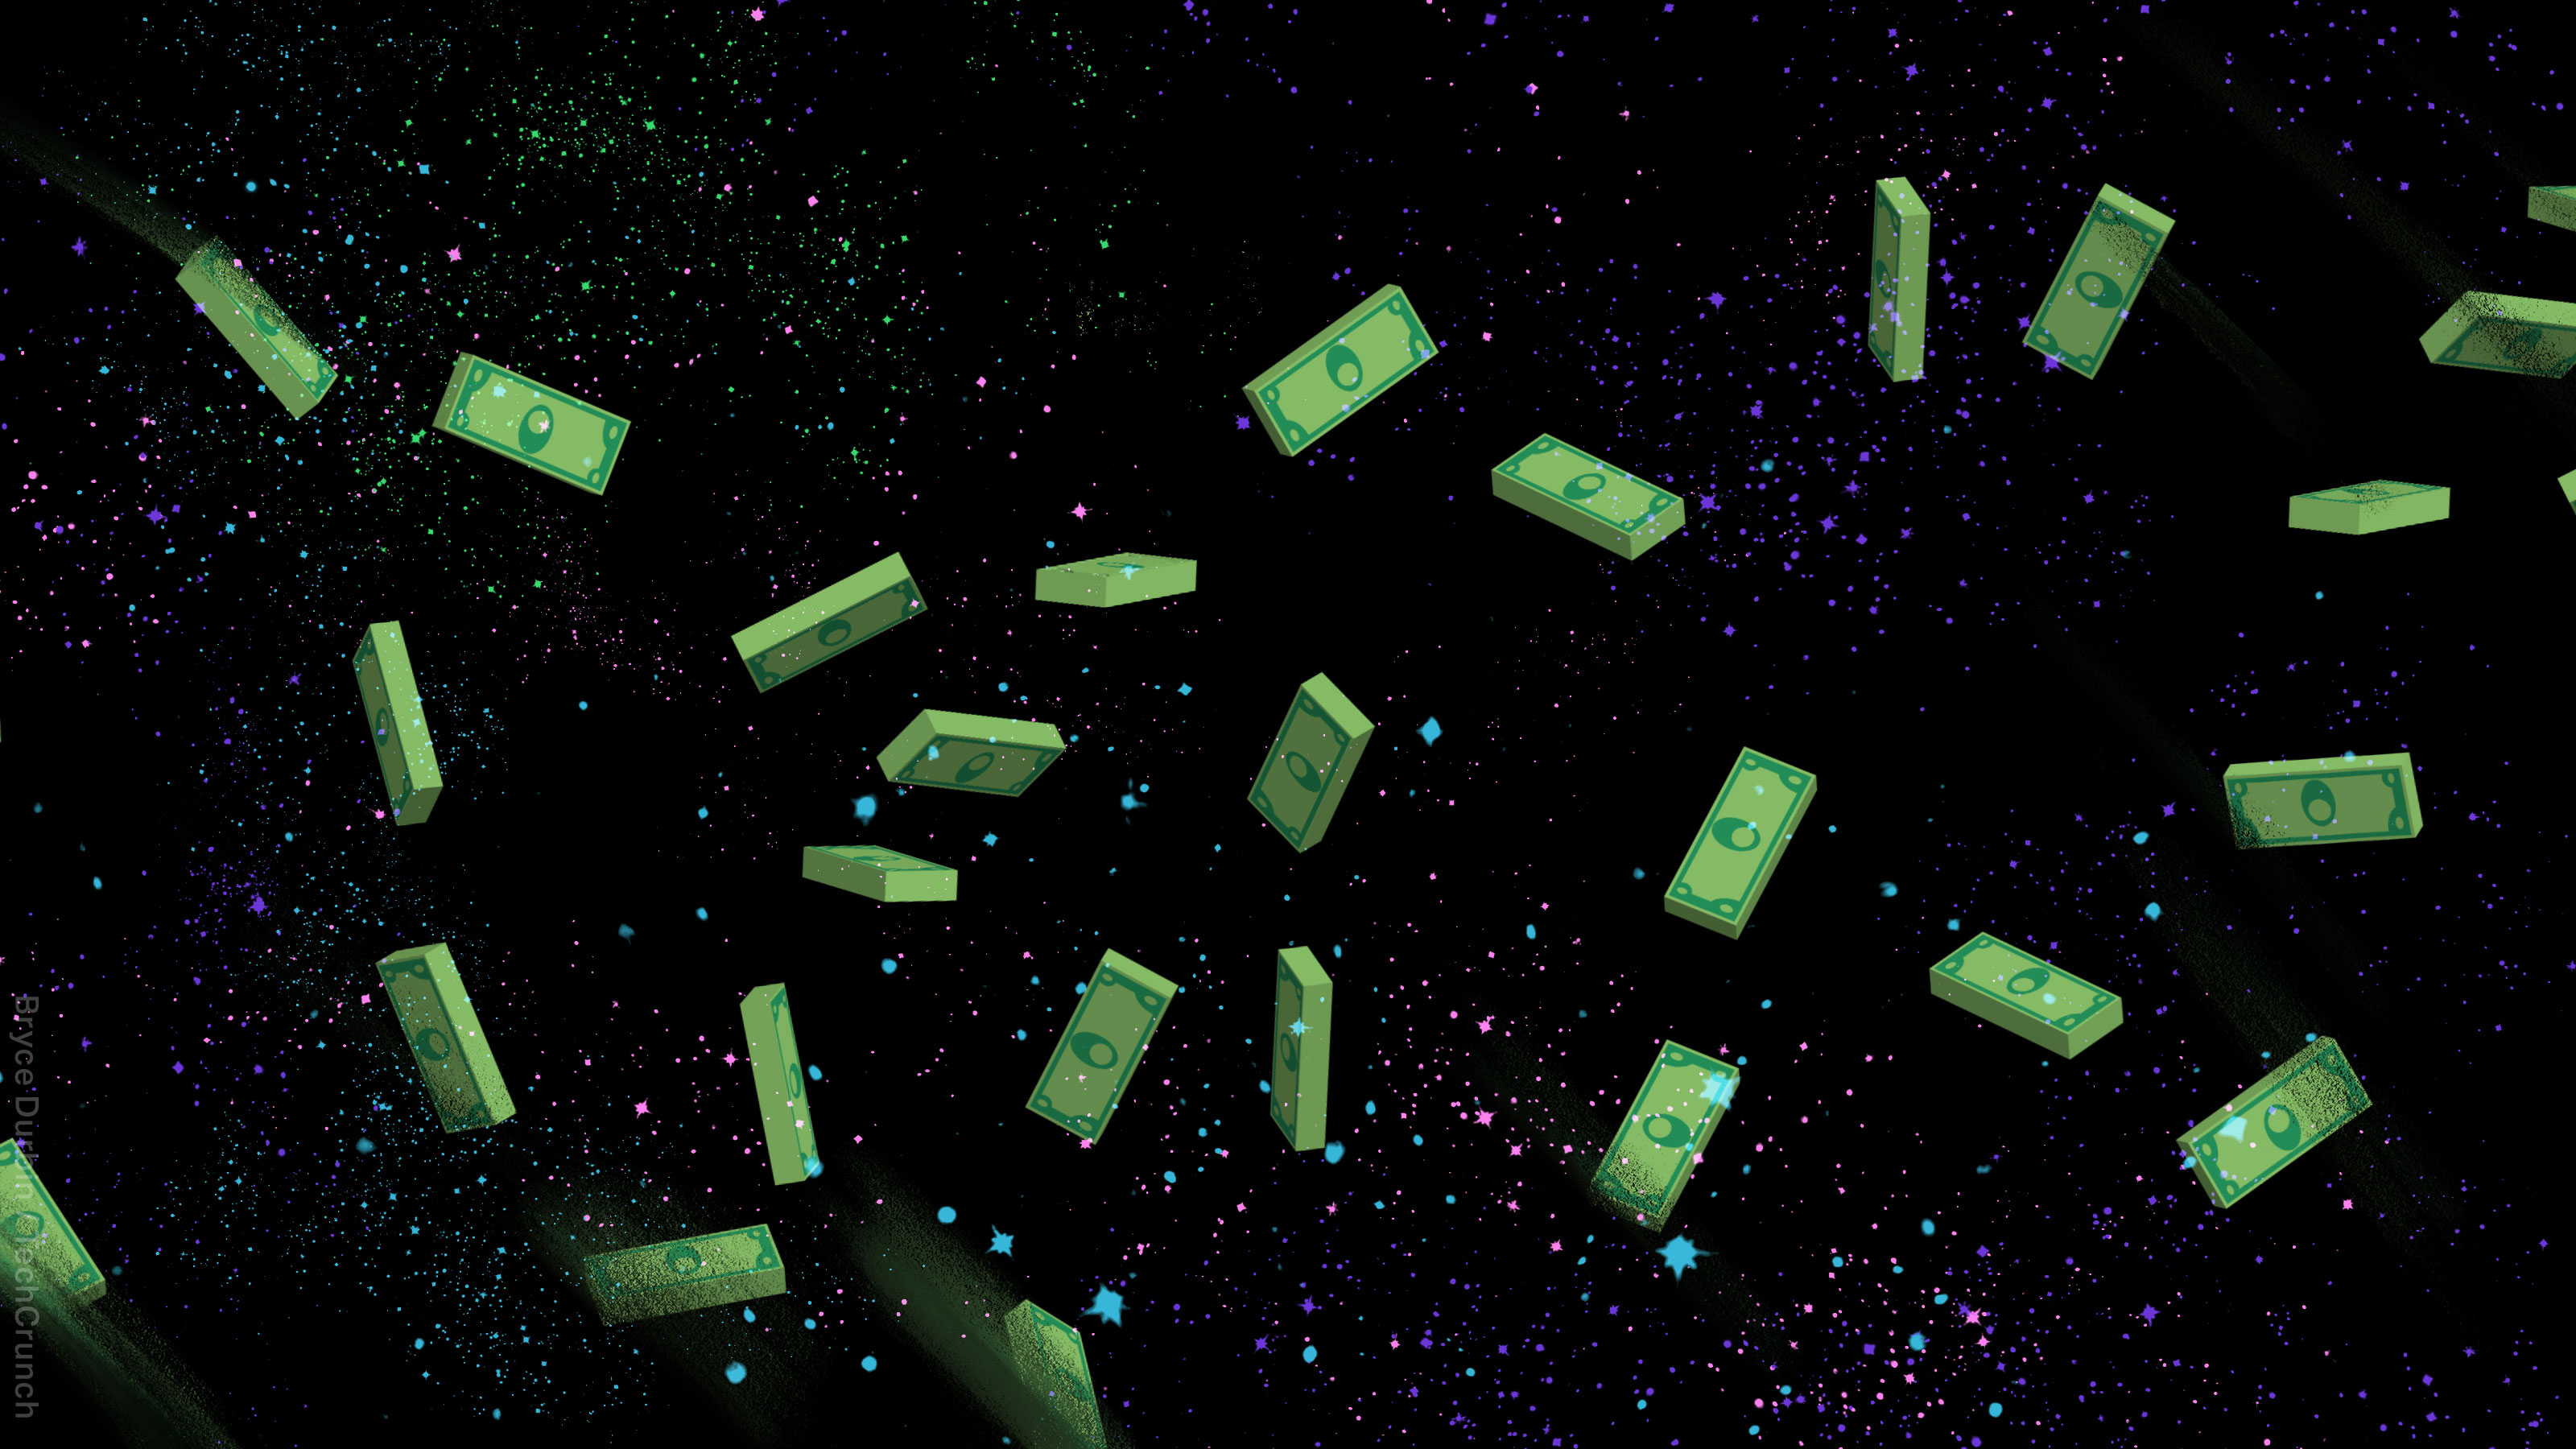 Money floating in space